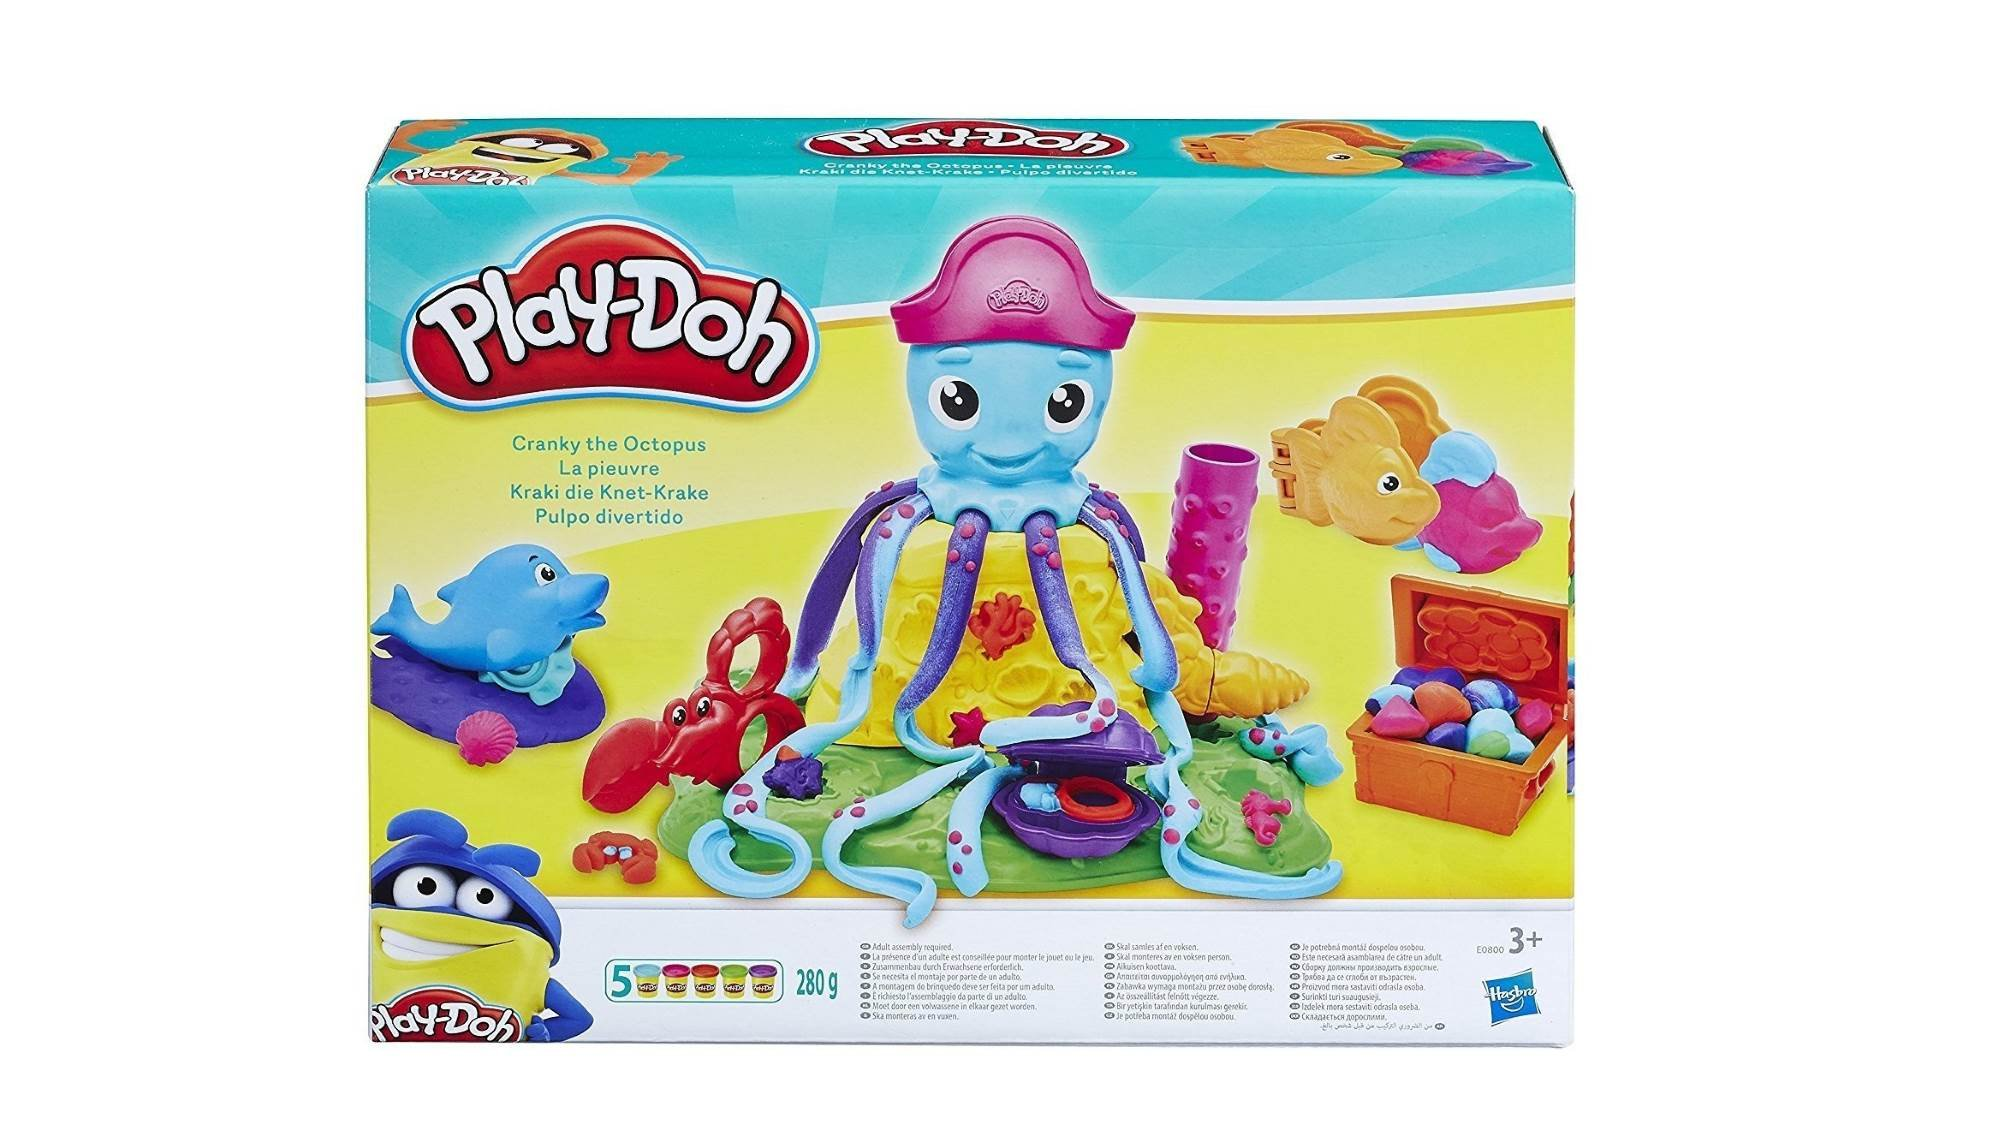 The best toys for 4-year-olds, 5-year-olds, 6-year-olds and up ...